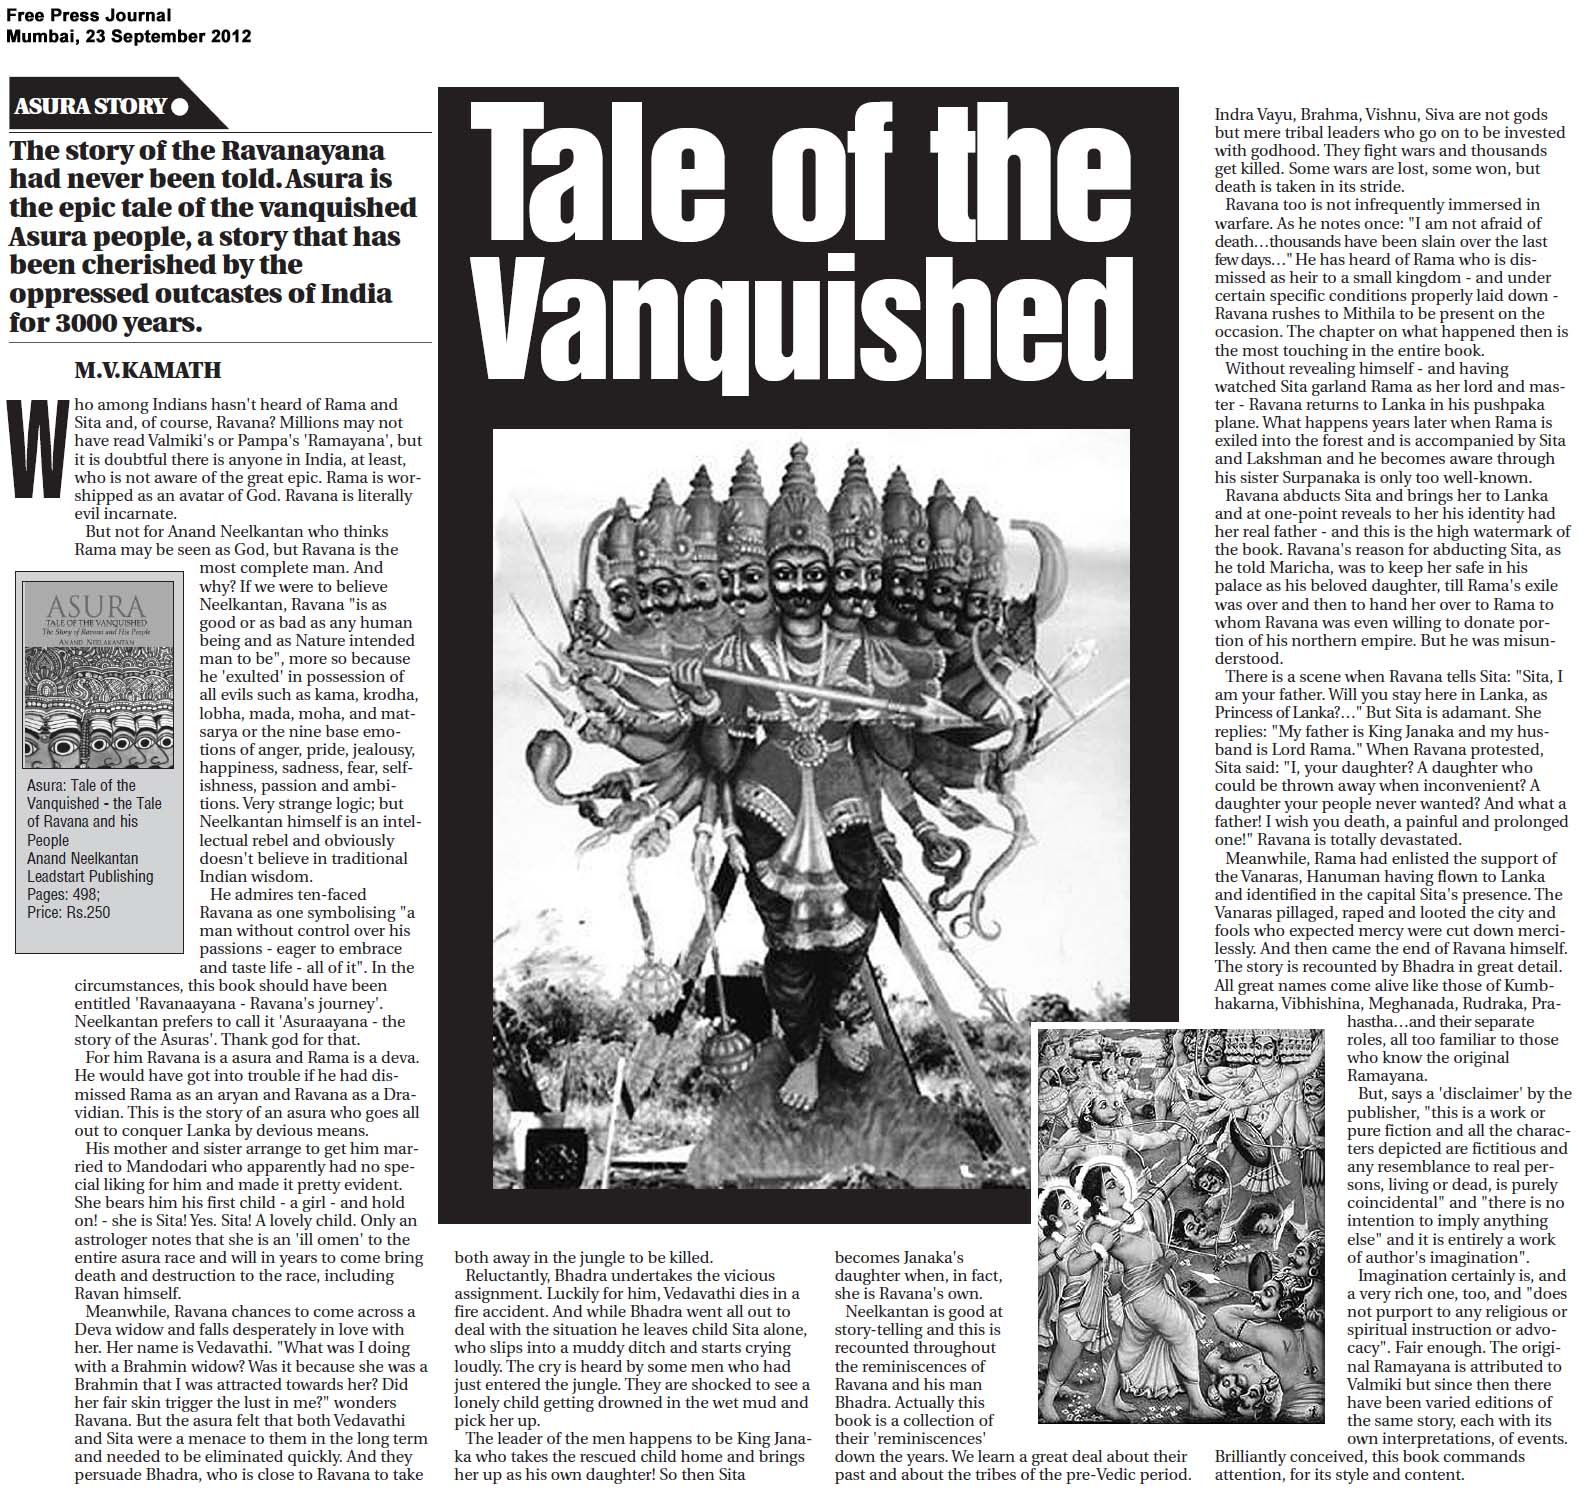 asura article 23rd sept - free press journal | Book Review